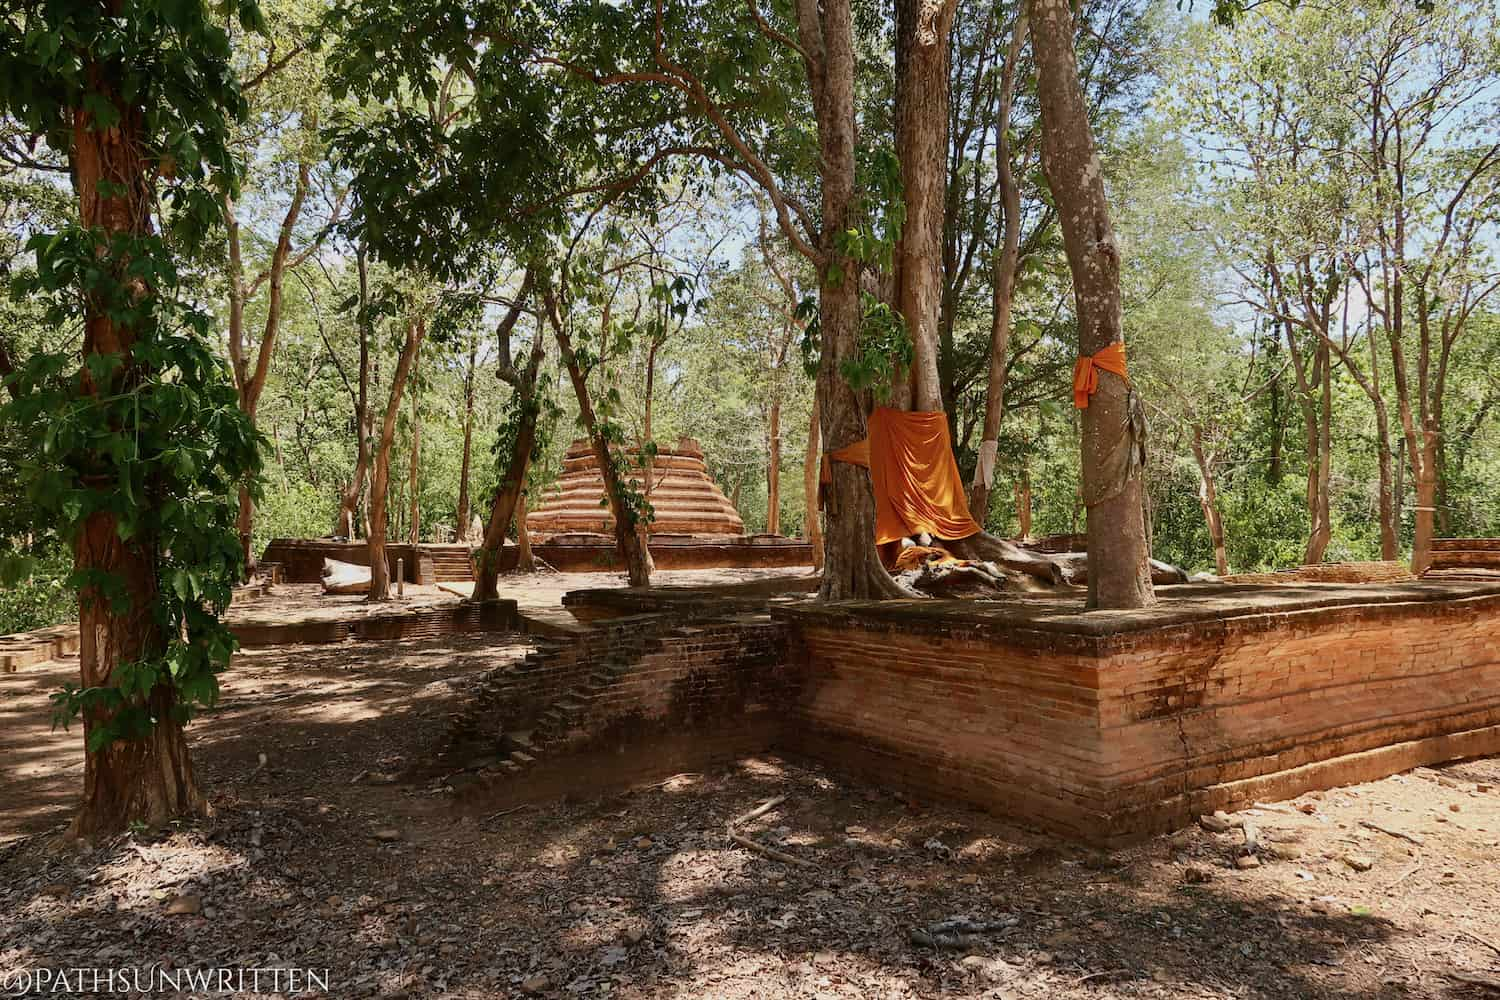 Chiang Mai's Lost Jungle Ruins: Ancient Saengchan & Phra Non